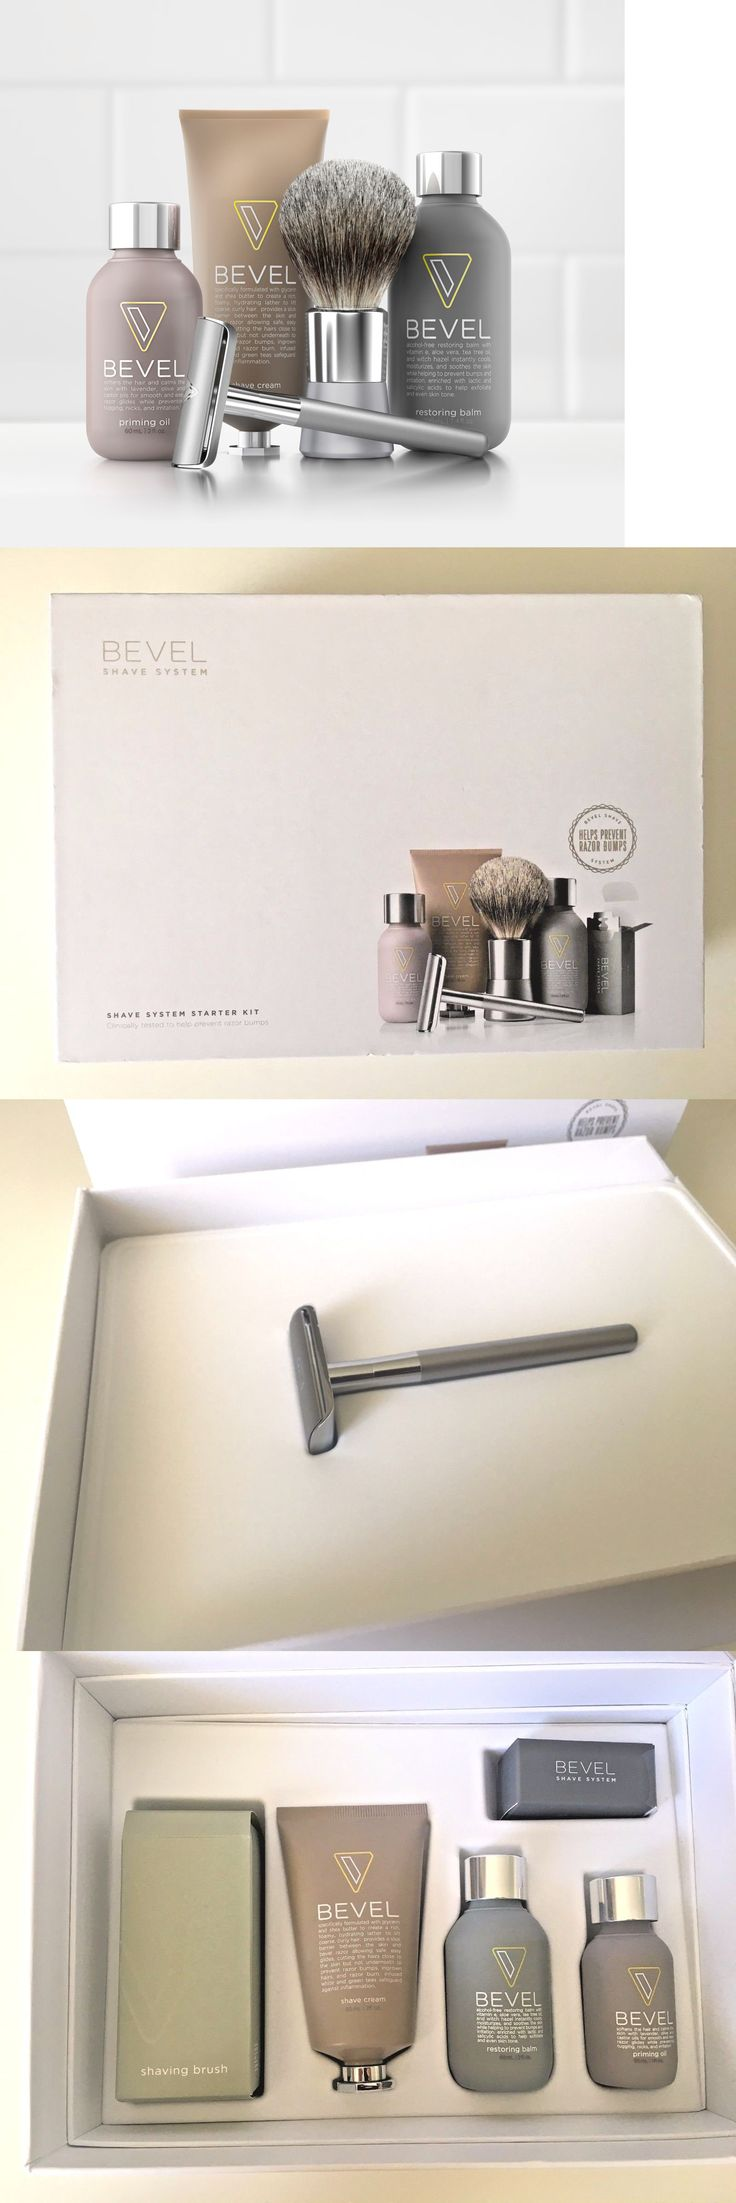 Shaving and Grooming Kits and Sets: Bevel Shave System Kit - Brand New -> BUY IT NOW ONLY: $52 on eBay!